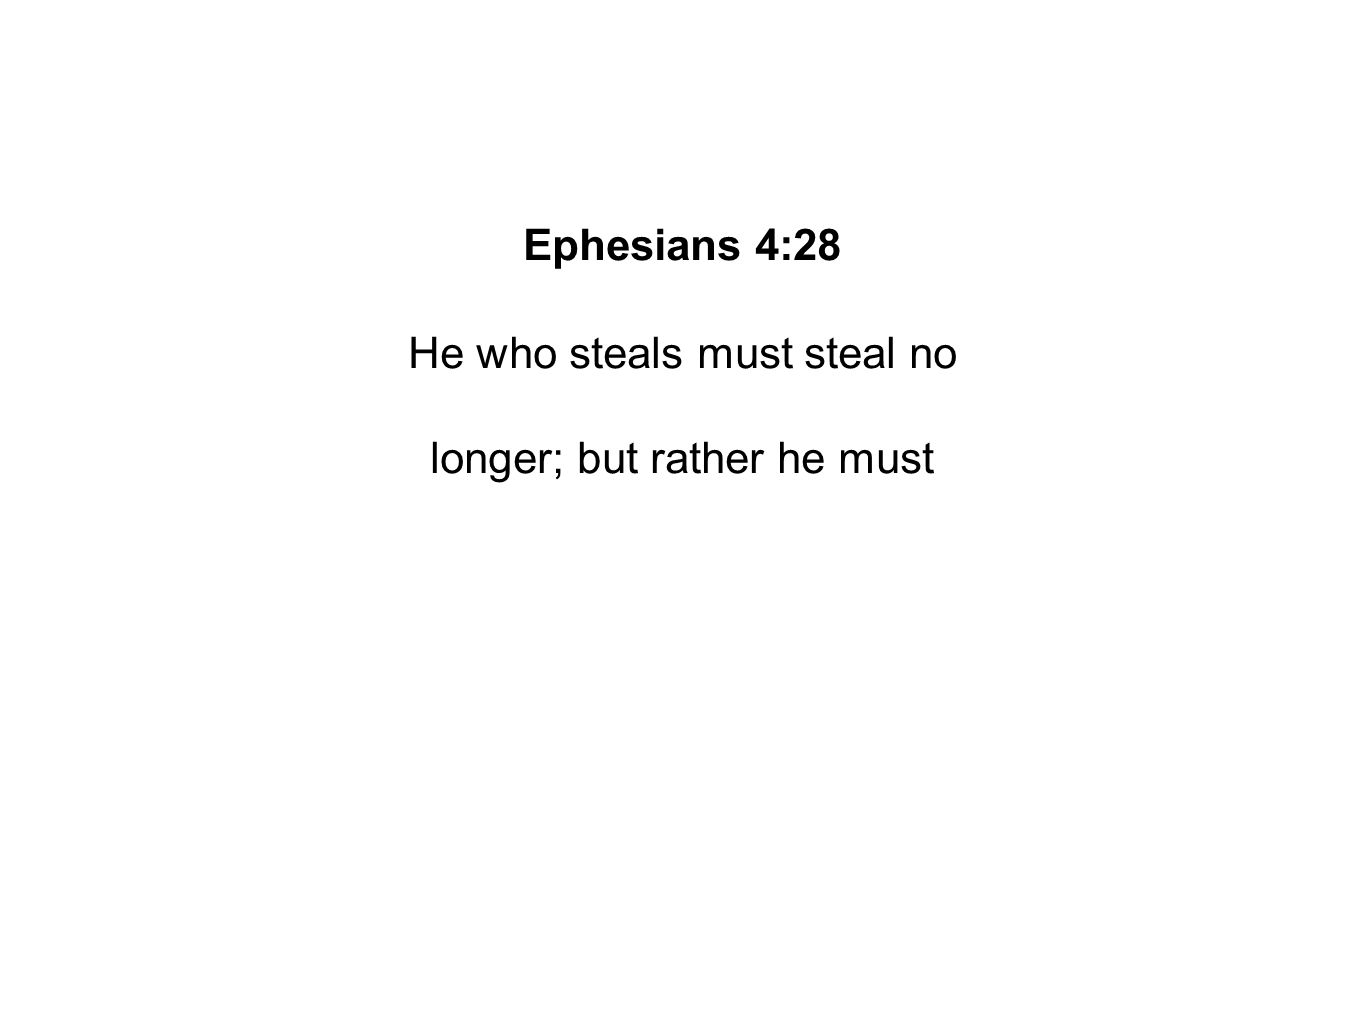 Ephesians 4:28 He who steals must steal no longer; but rather he must